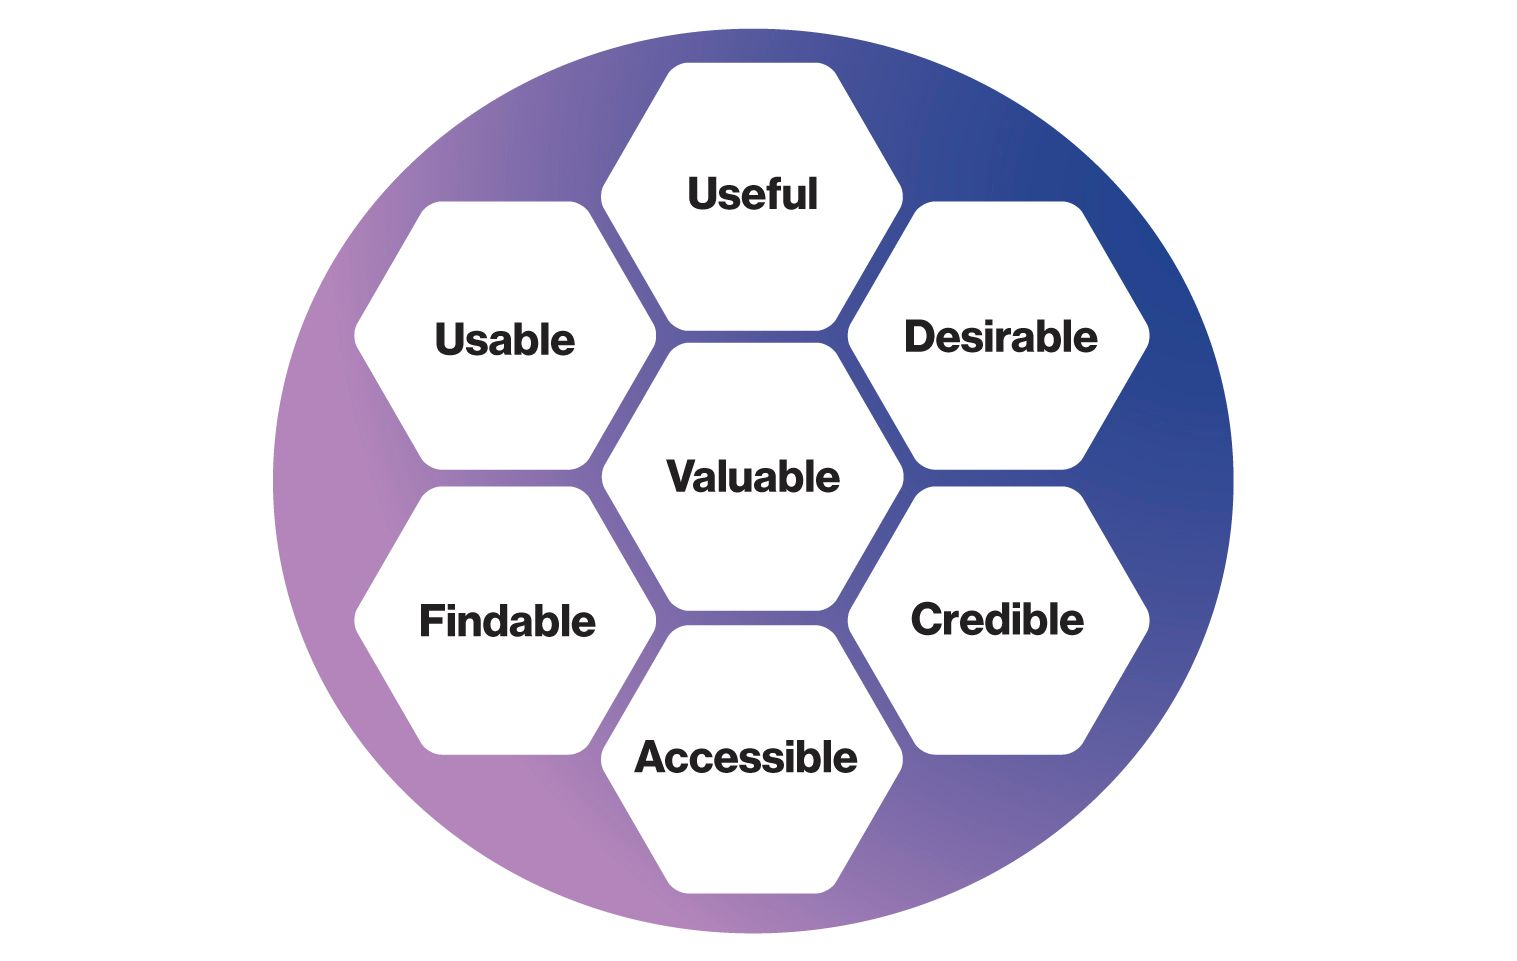 Image:Peter Morville's UX honeycomb, which features the factors useful, usable, findable, accessible, credible, and desireable around the central idea of valuable.